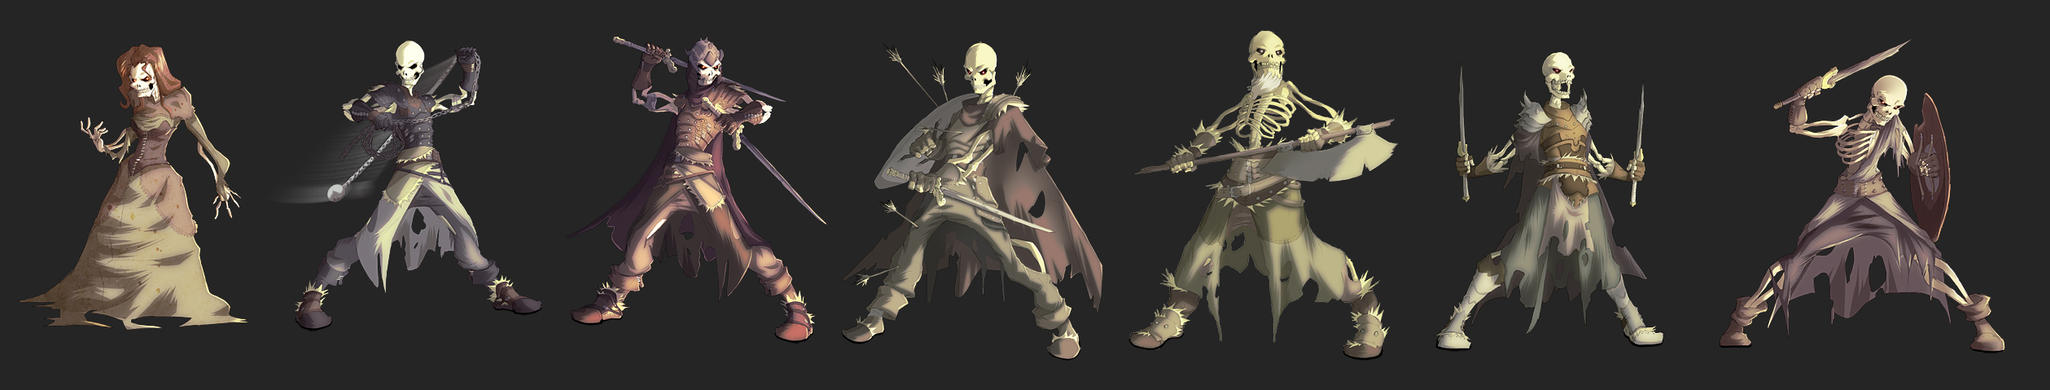 skeletons concept by MoonFX